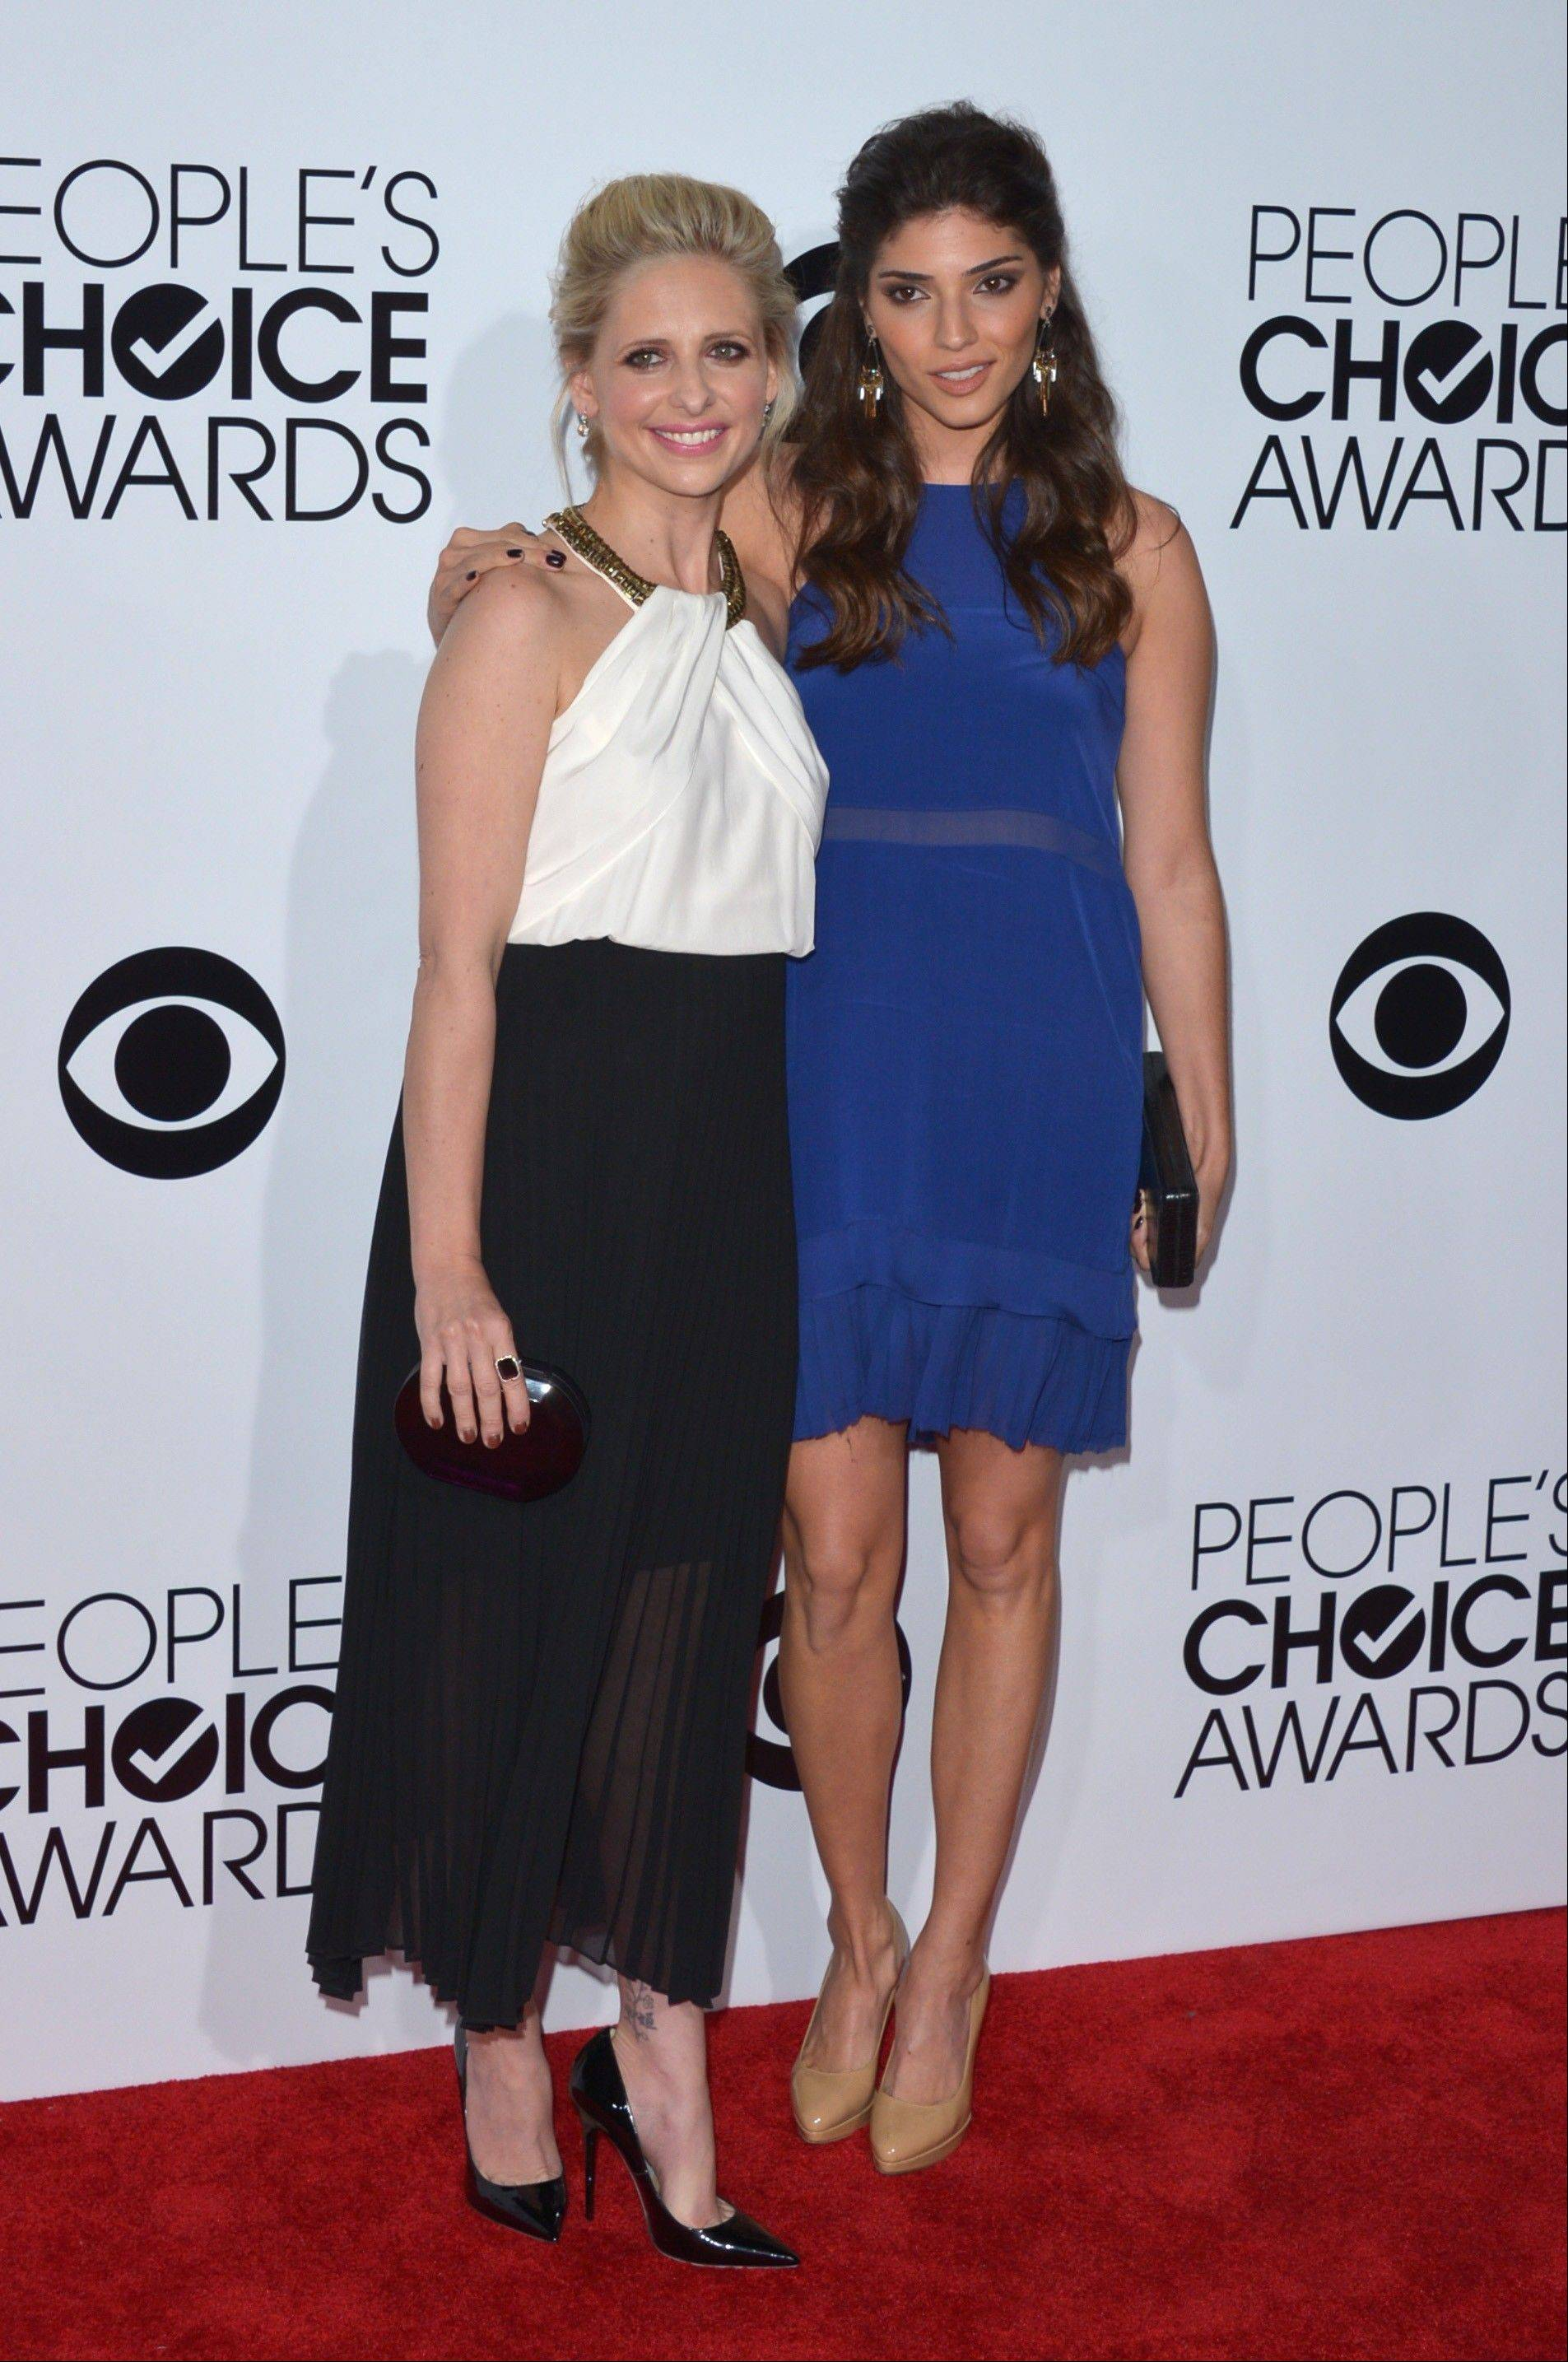 Associated PressSarah Michelle Gellar, left, and Amanda Setton arrive at the 40th annual People's Choice Awards Wednesday in Los Angeles.